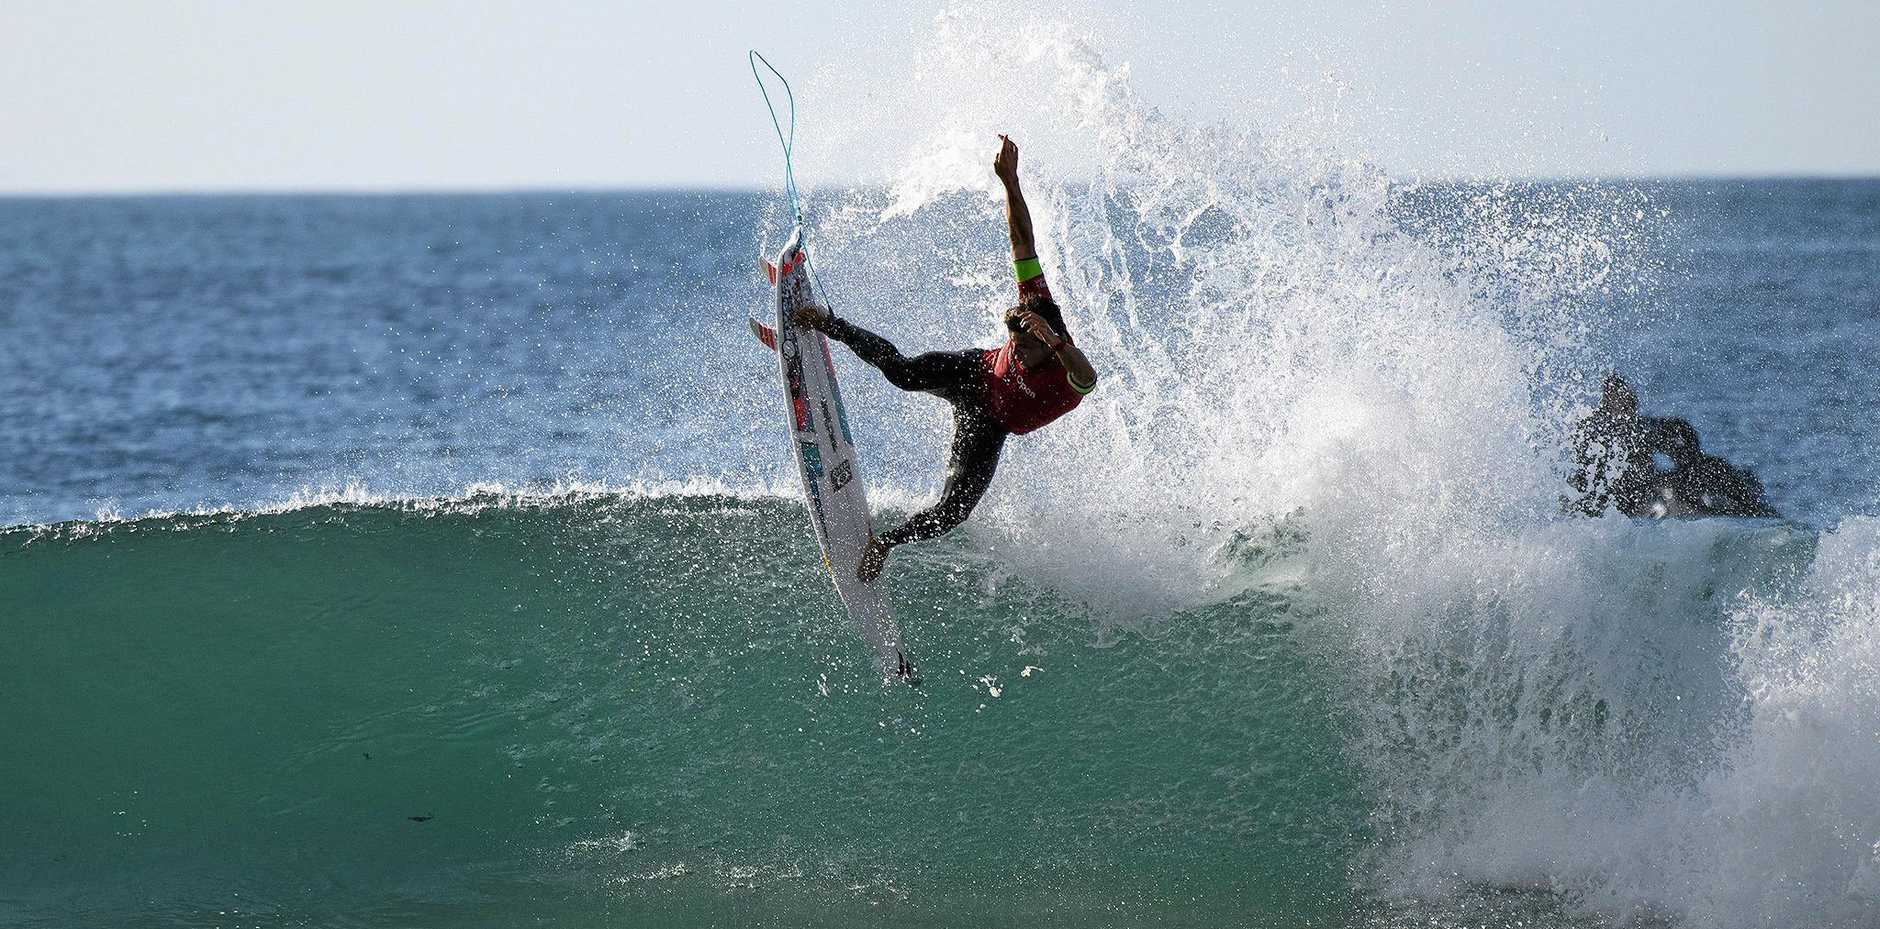 SENSATIONAL: Julian Wilson winning his round three heat at the J-Bay Open.